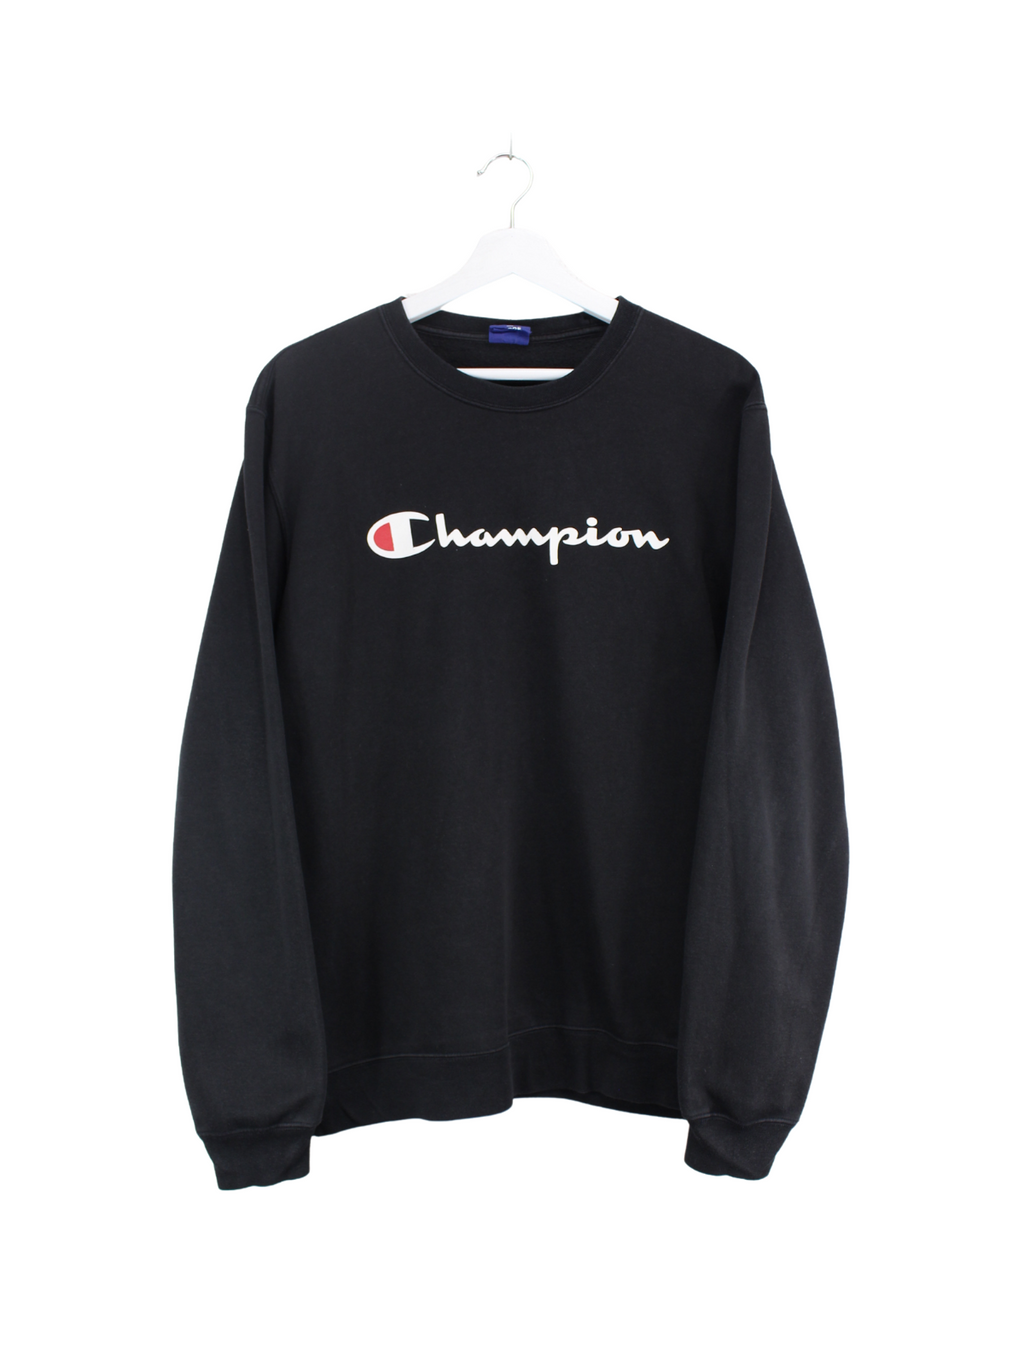 Champion Sweater Schwarz L